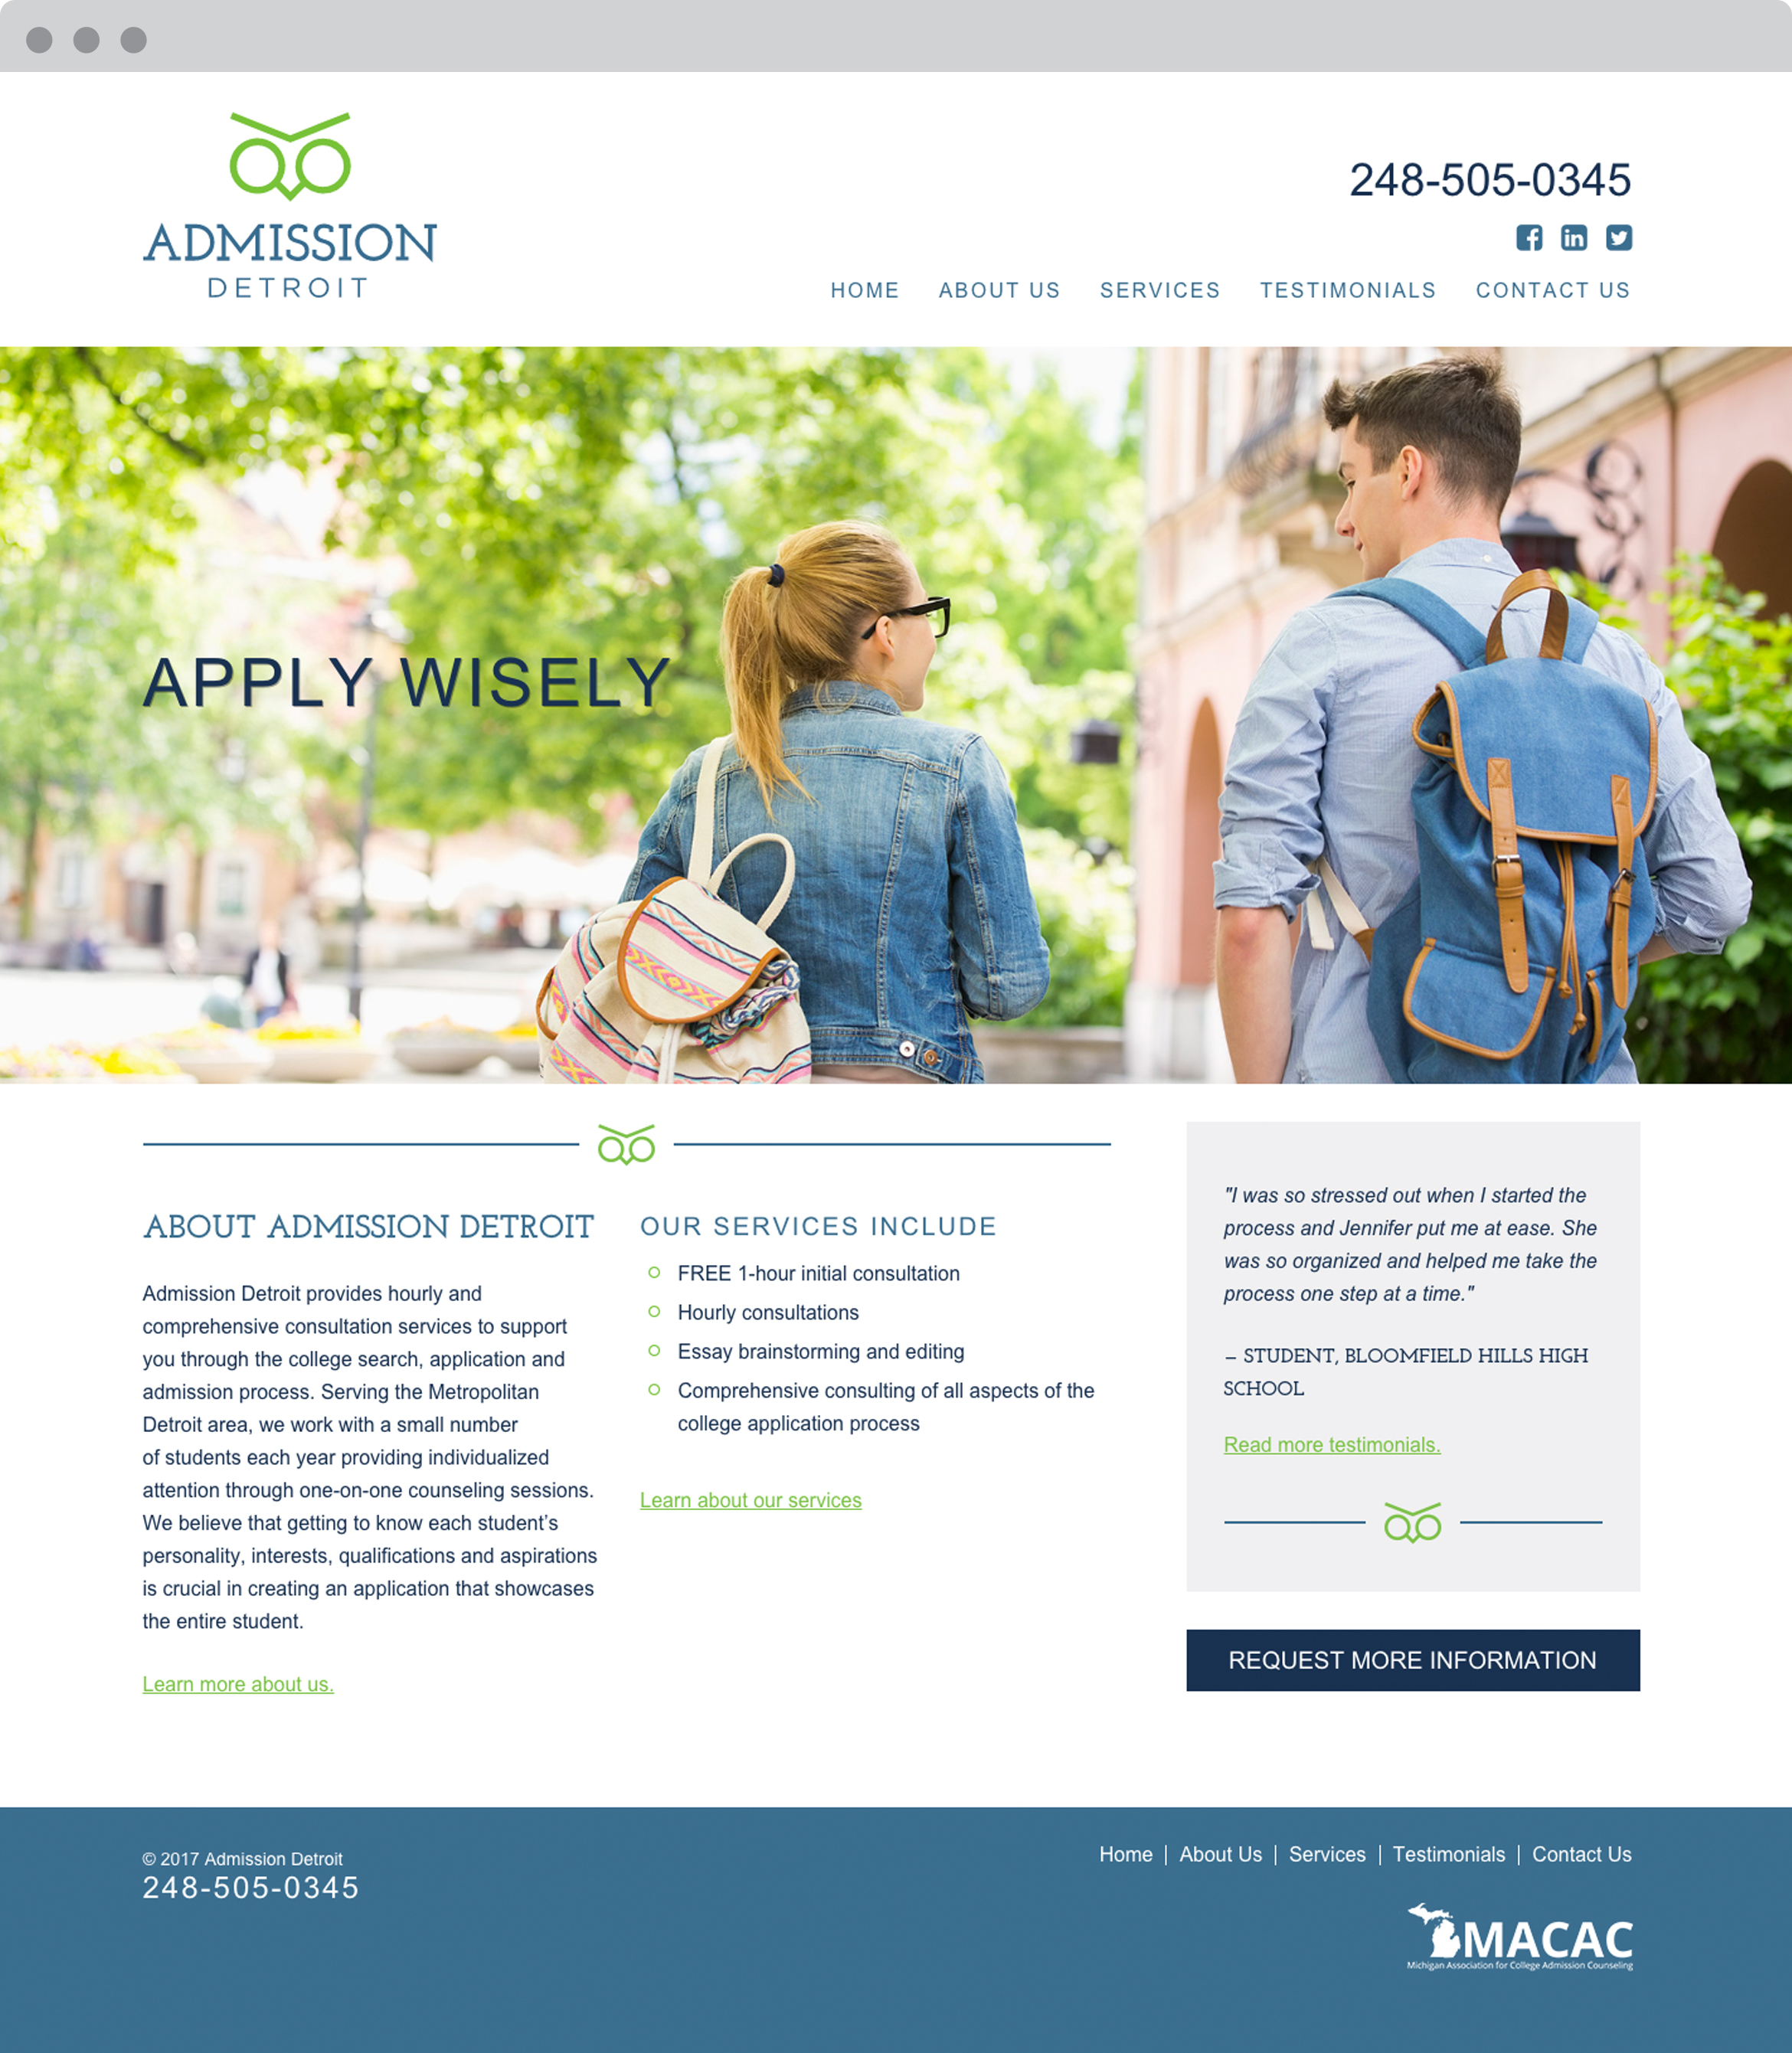 Admission Detroit Mobile Friendly Responsive Website